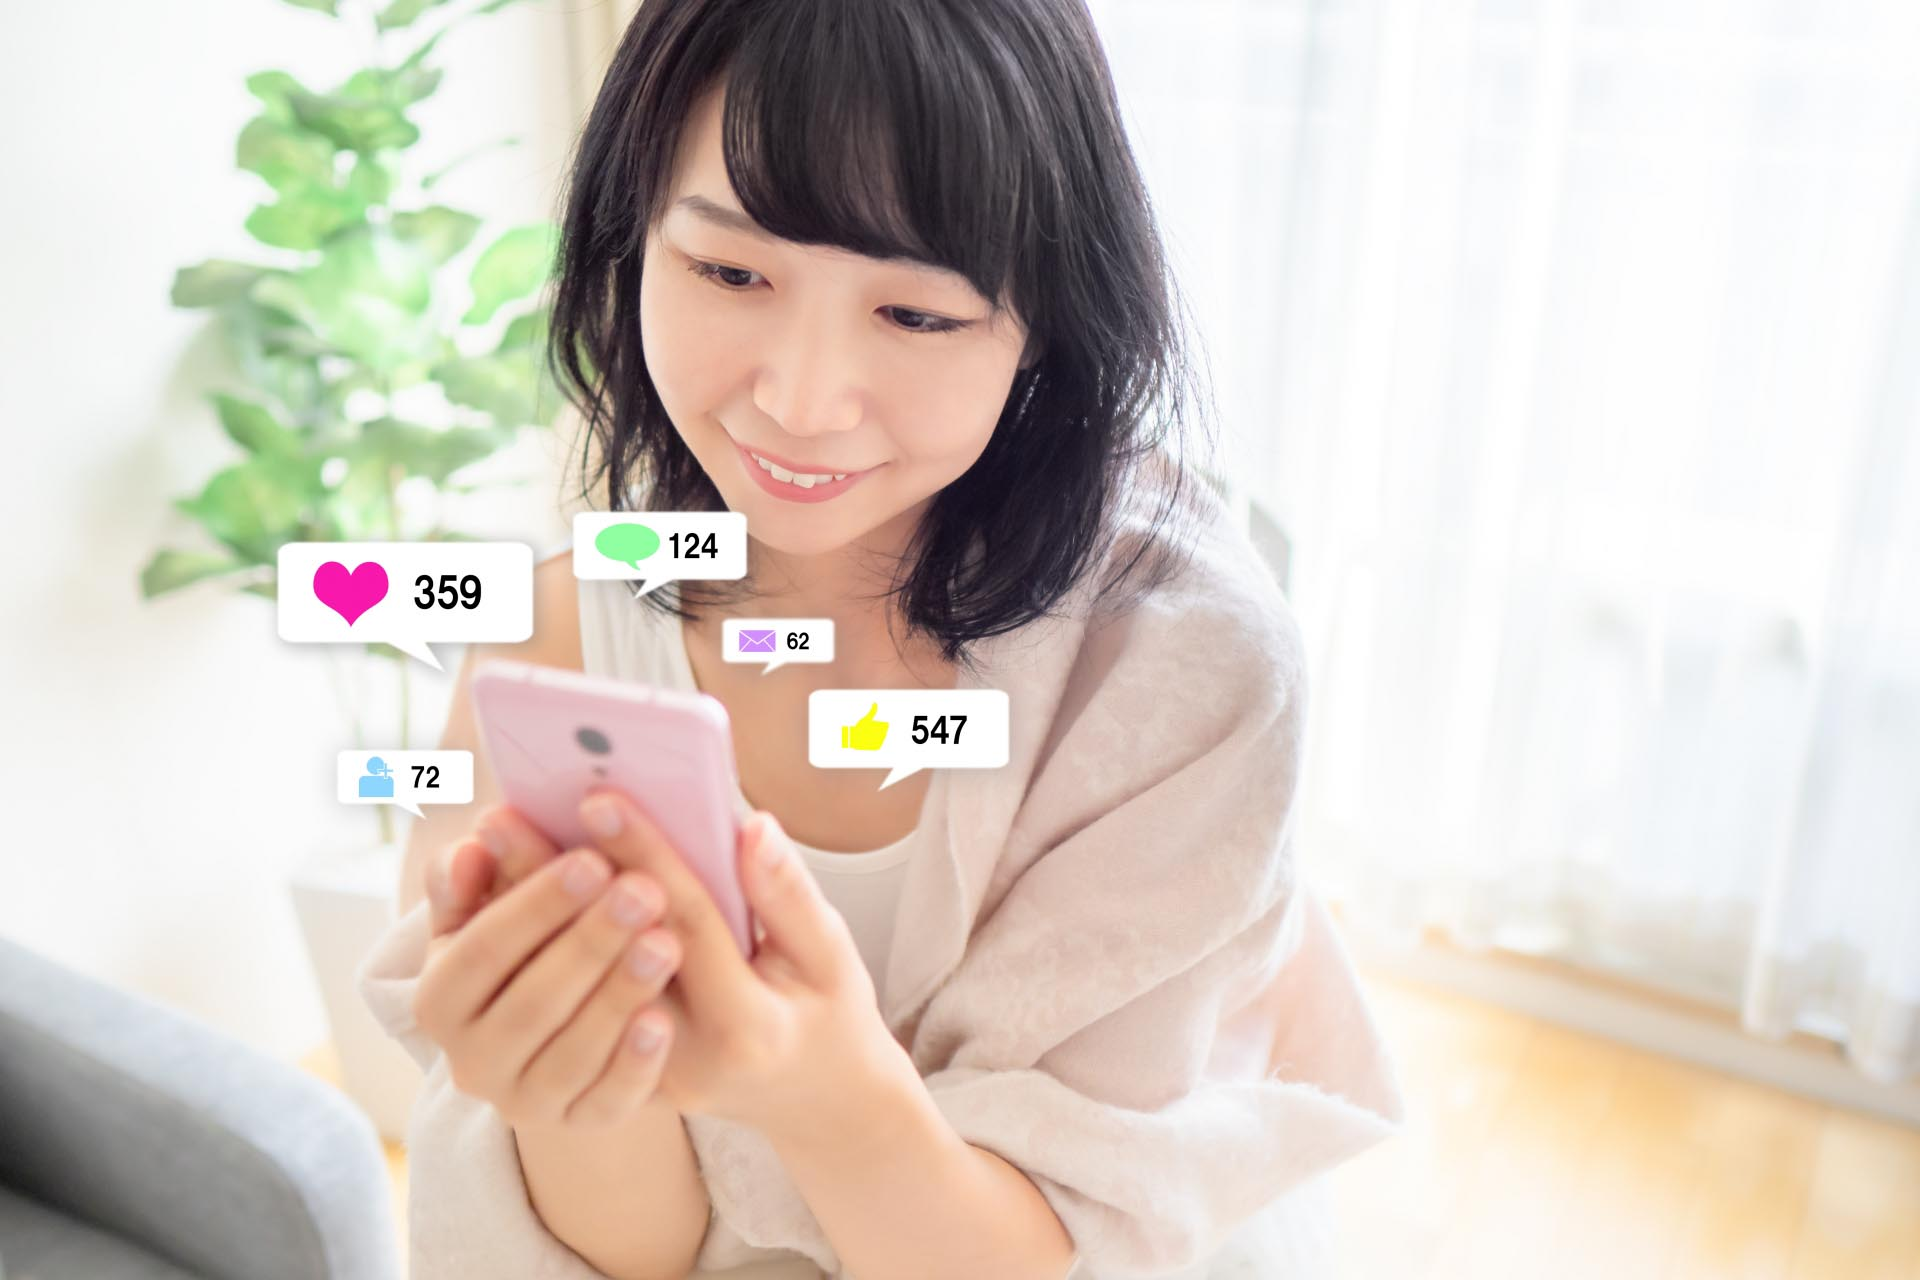 UI UX For Social Media Marketing In Japan